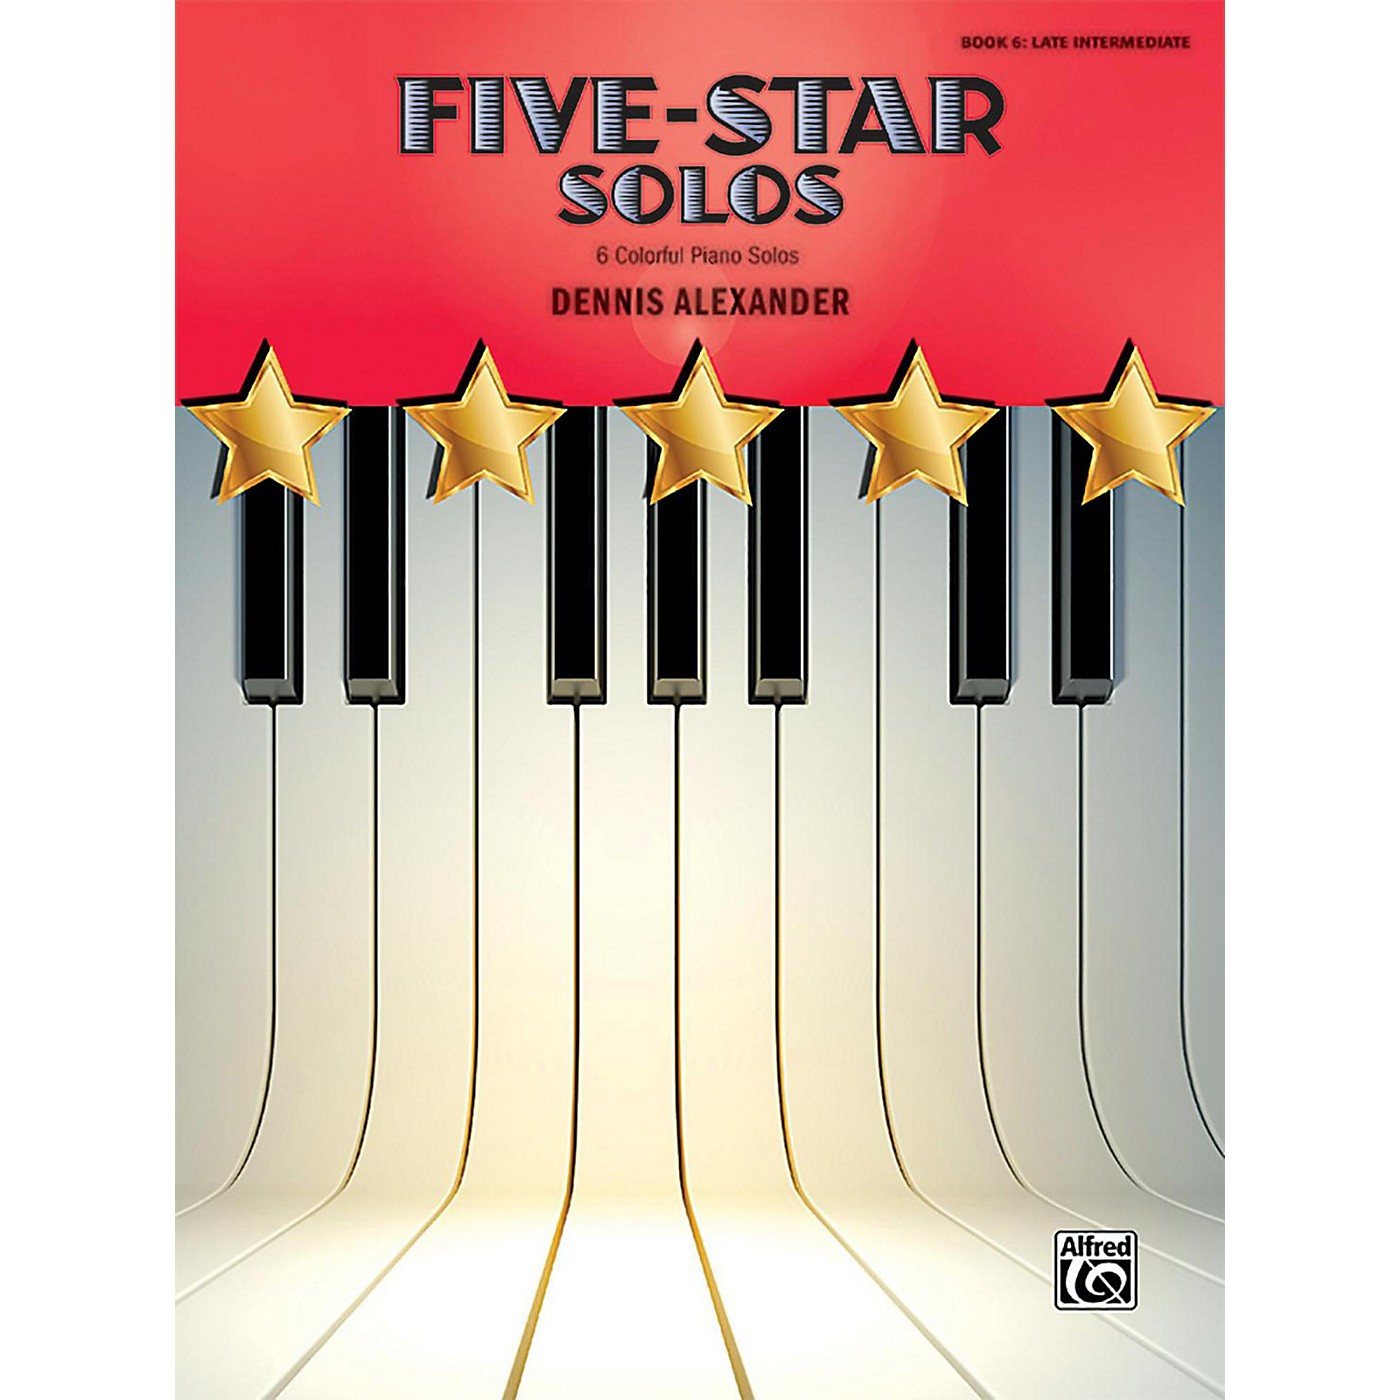 Alfred Five-Star Solos, Book 6 Late Intermediate thumbnail